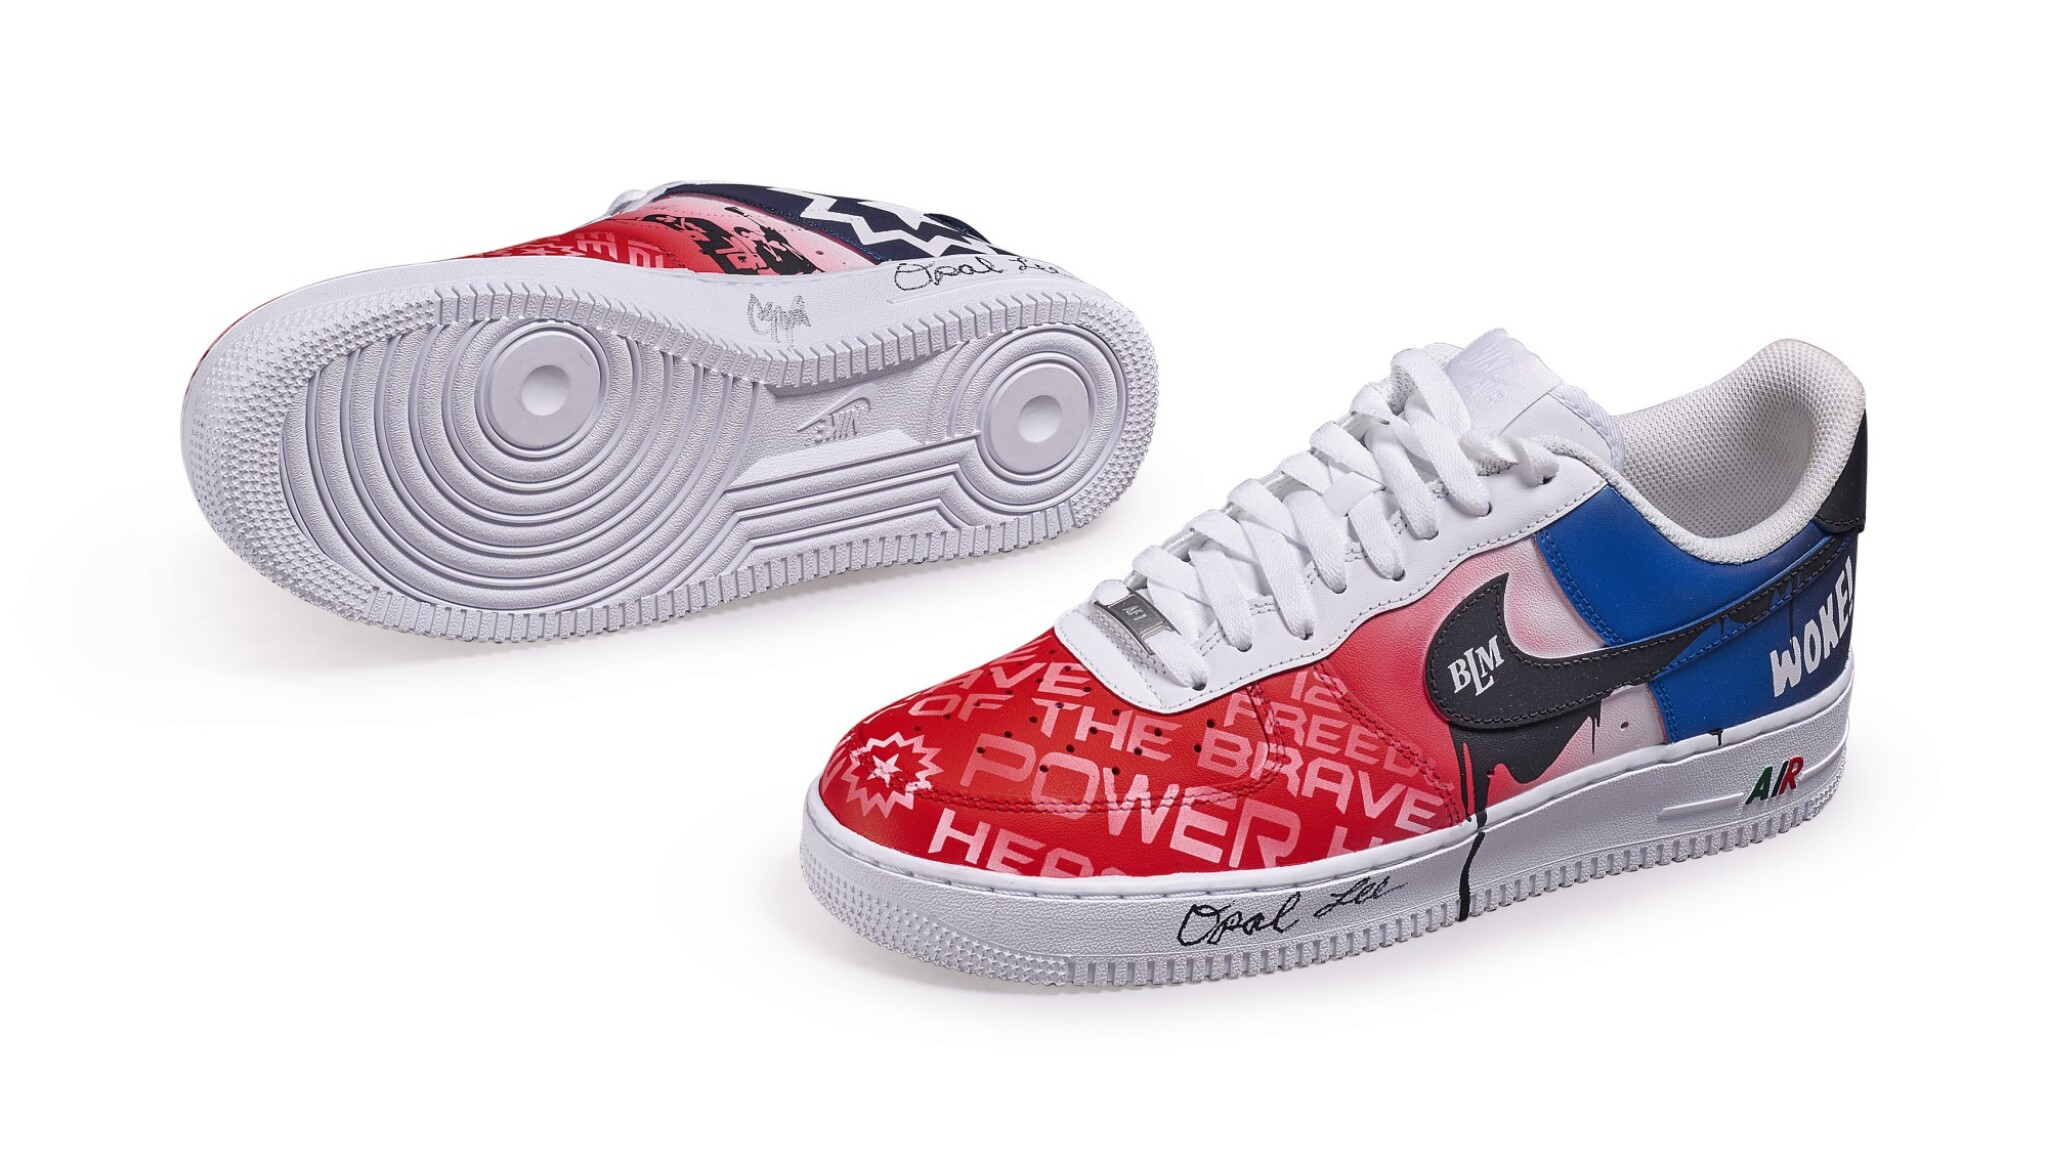 View full screen - View 1 of Lot 118. Custom Air Force 1, by Opal Lee, Niko Brim, & Sierato in honor of Juneteenth Holiday Campaign, Size 10.5.